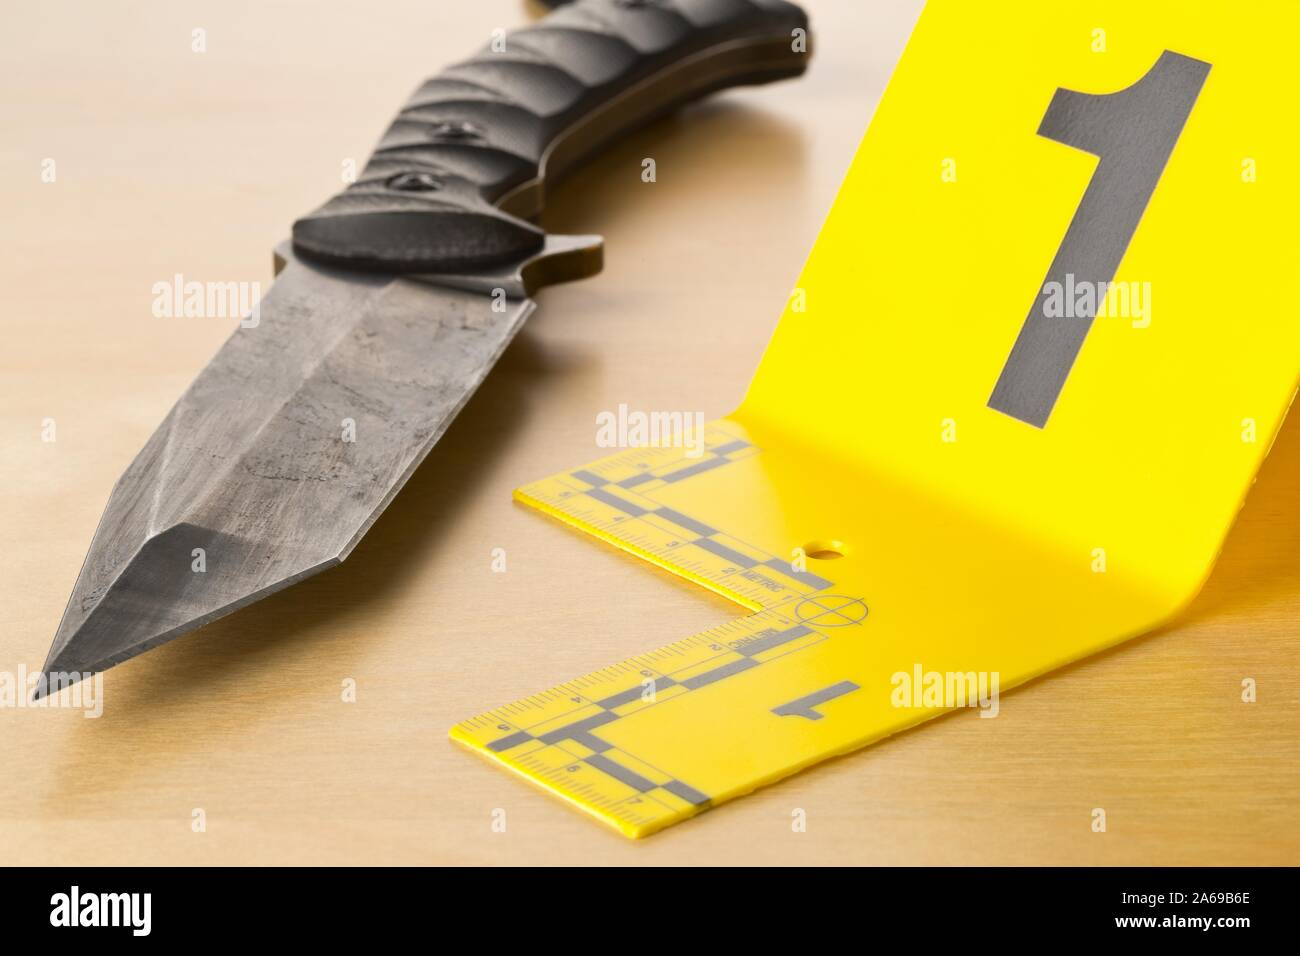 Crime Scene Investigation Csi Evidence Marker With Knife On Wooden Floor Background At Crime Scene Police Evidence Or Forensic Investigation Concep Stock Photo Alamy